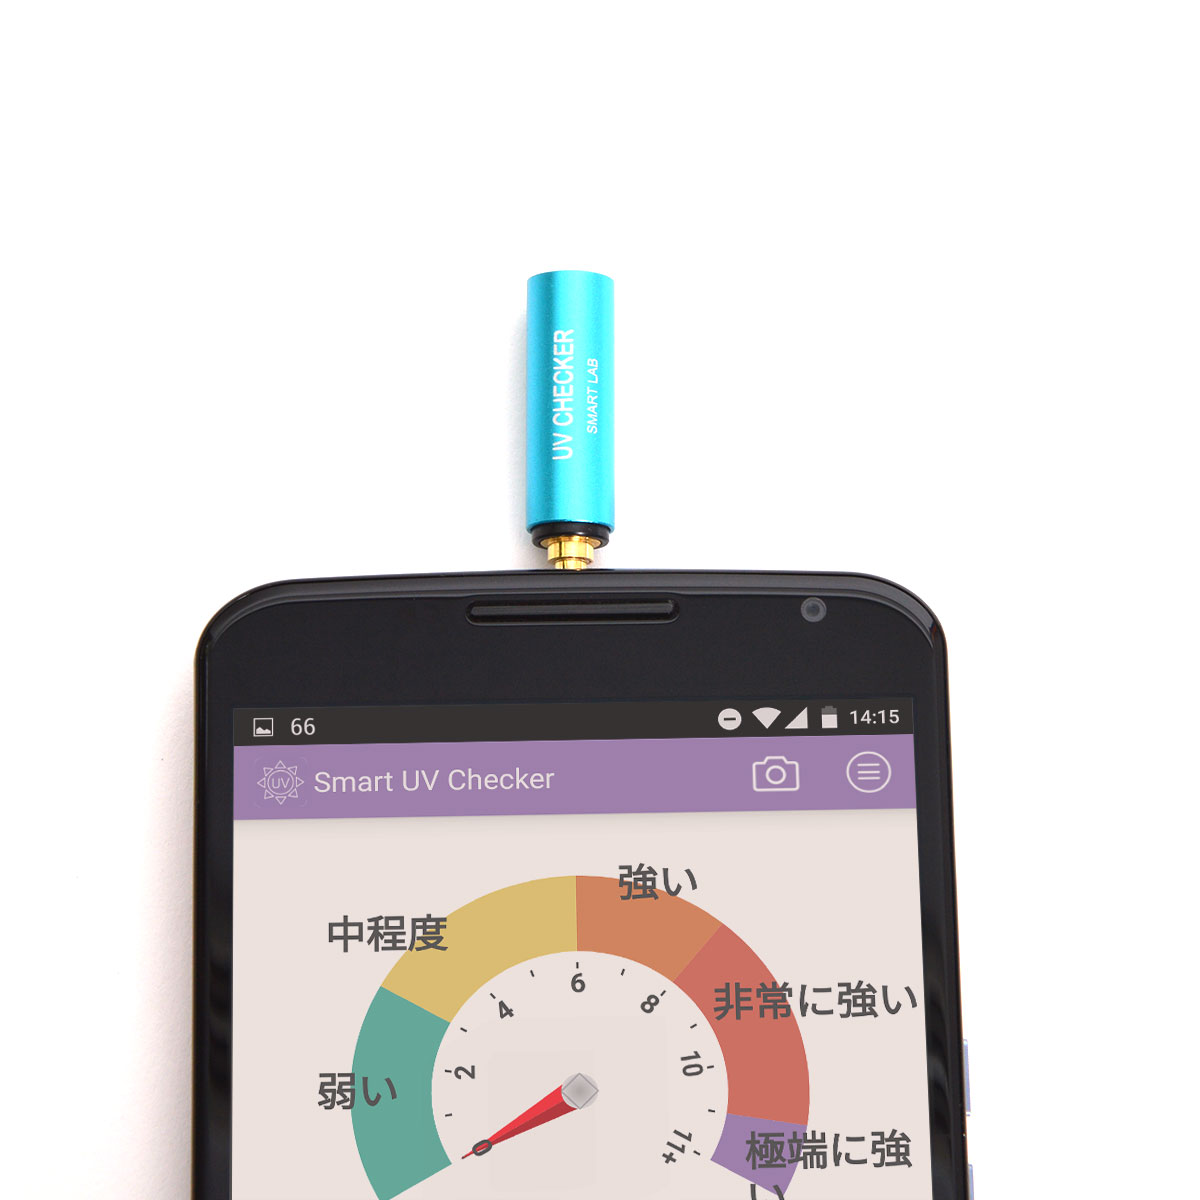 「Smart UV Checker」